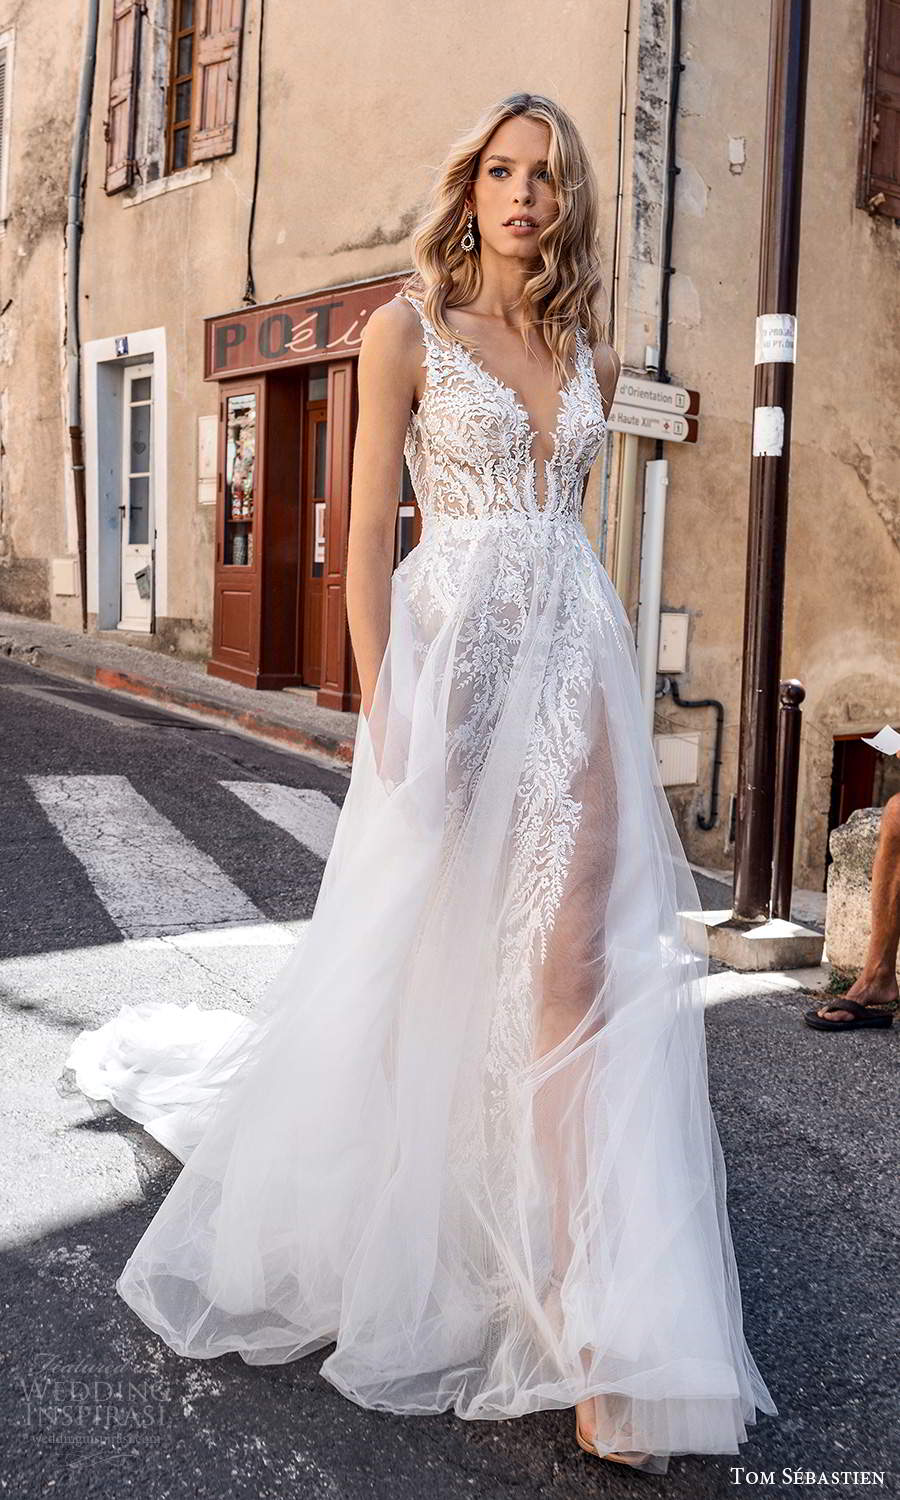 tom sebastien 2021 bridal provence sleeveless straps plunging v neckline fully embellished lace sheath wedding dress sheer a line overskirt chapel train (14) mv